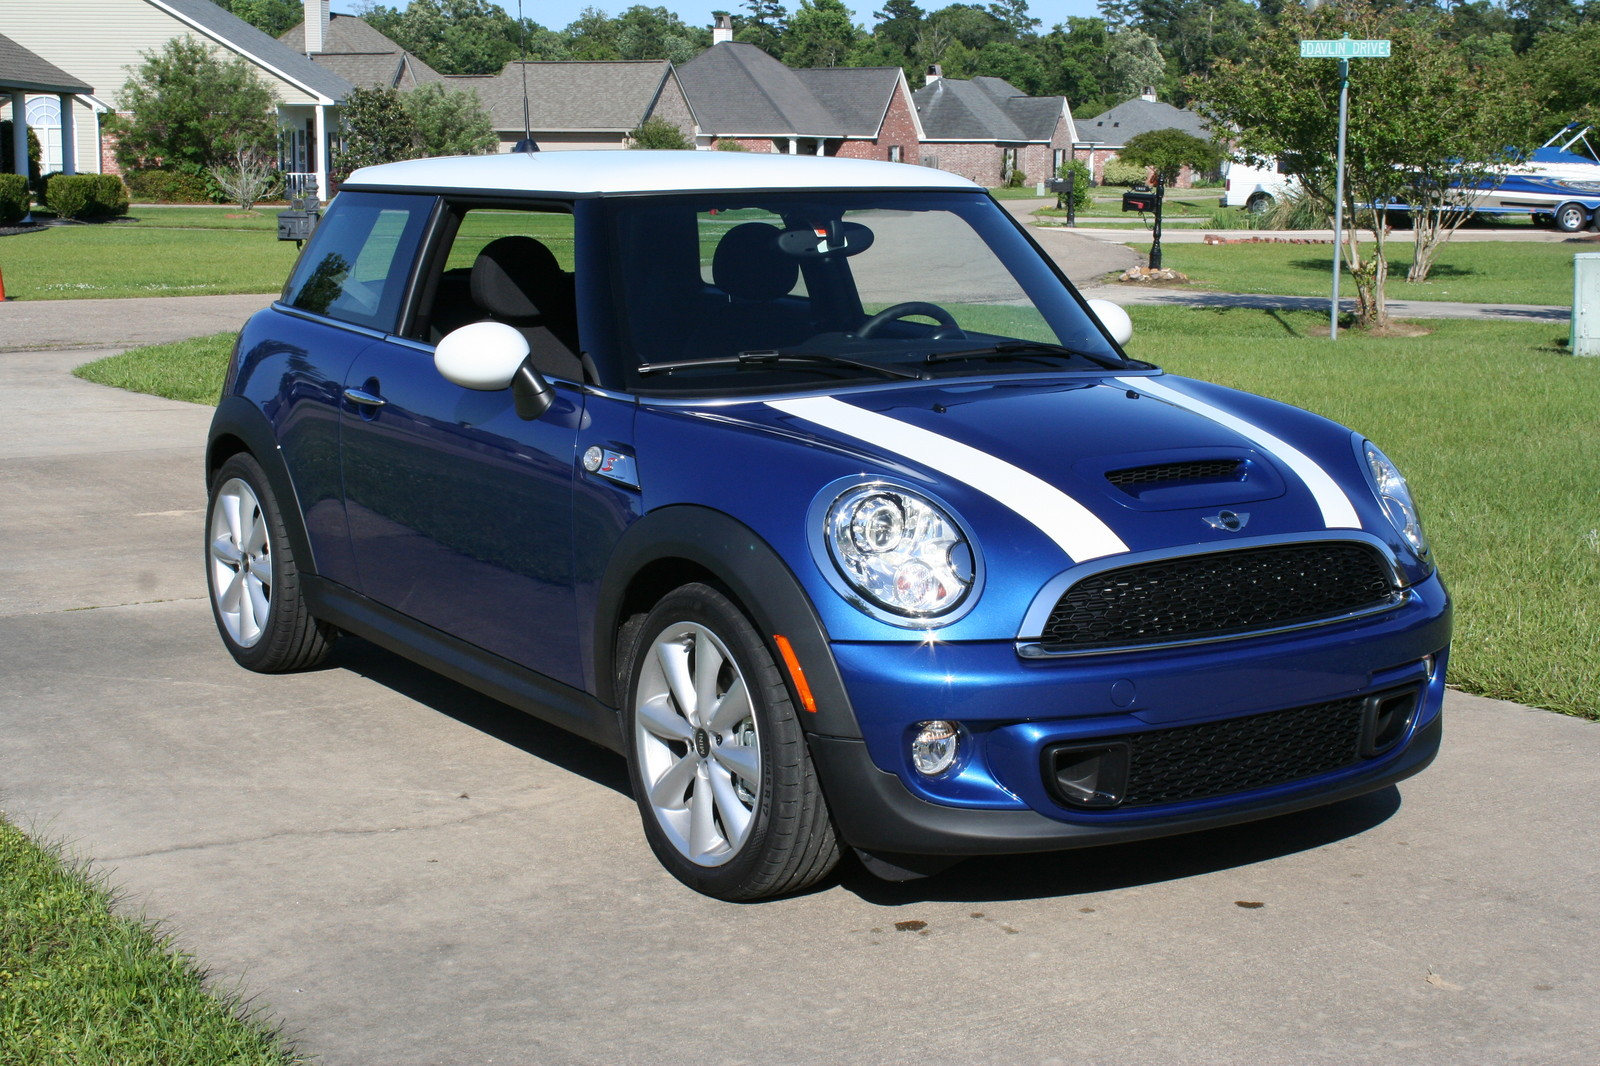 2013 lightning blue mini cooper s pictures mods upgrades. Black Bedroom Furniture Sets. Home Design Ideas